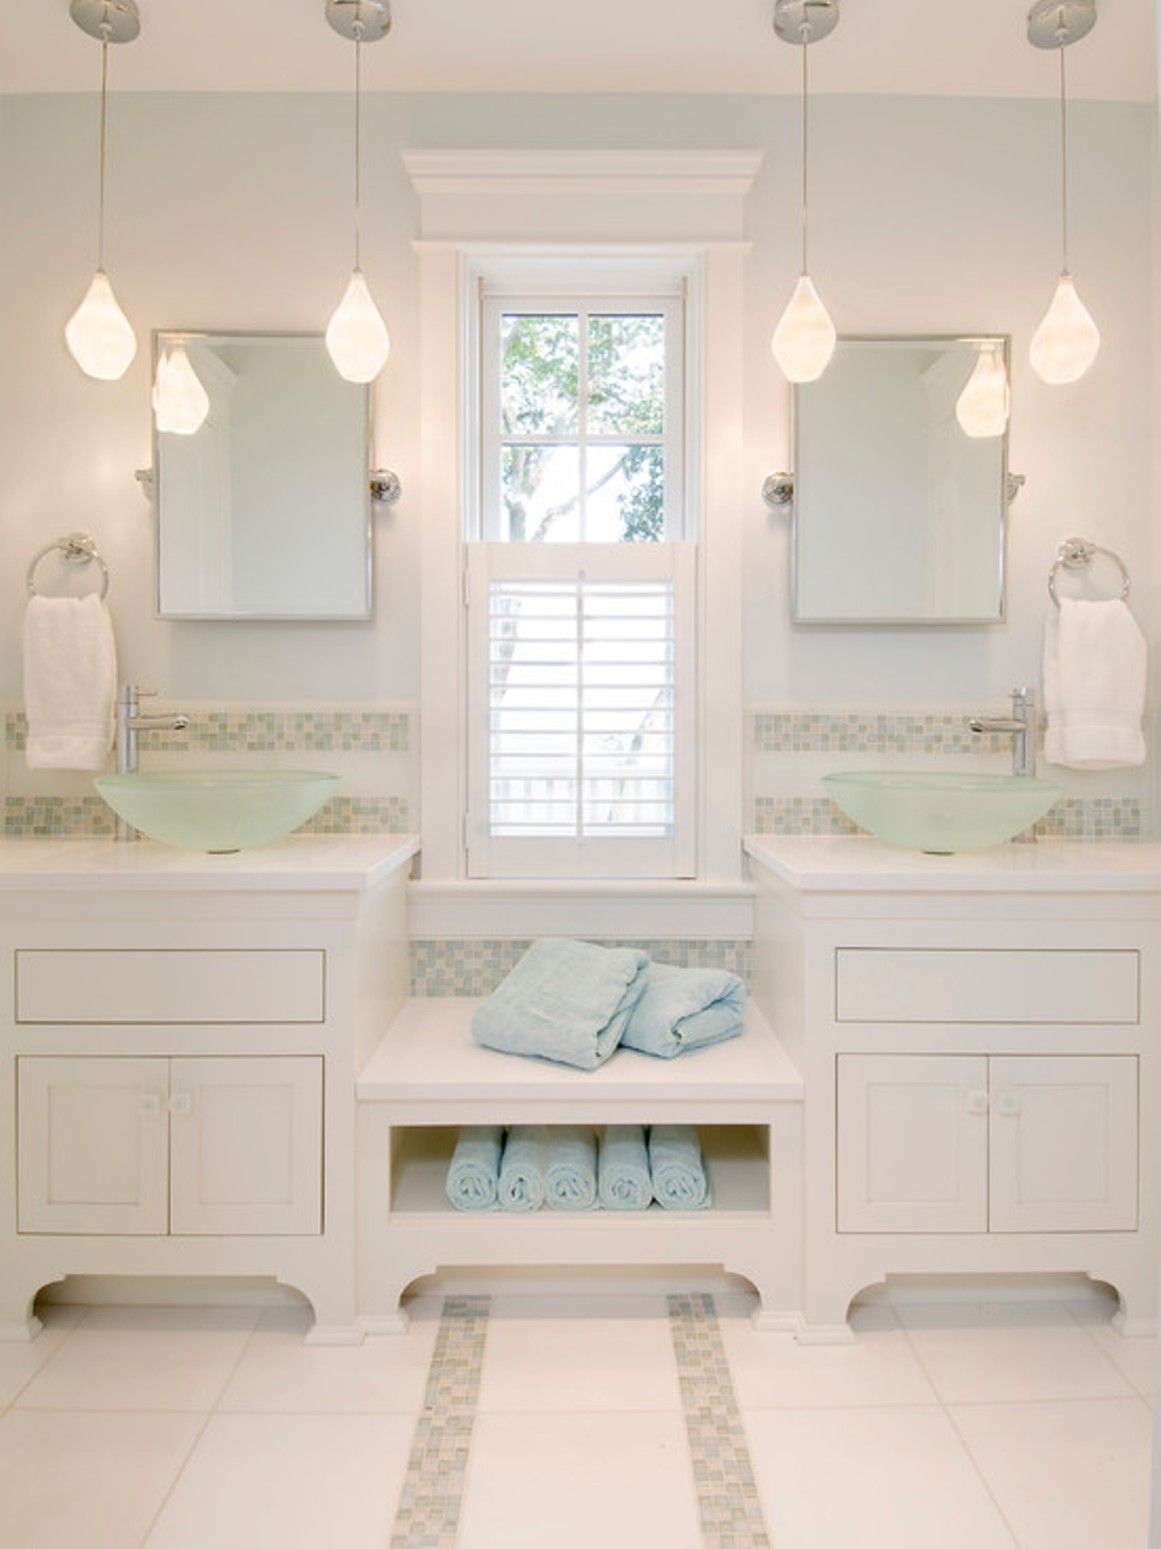 Charmant Bathroom , Bathroom Vanity Lighting Fixtures : Awesome Beach House Bathroom  With White Bathroom Vanity Lighting